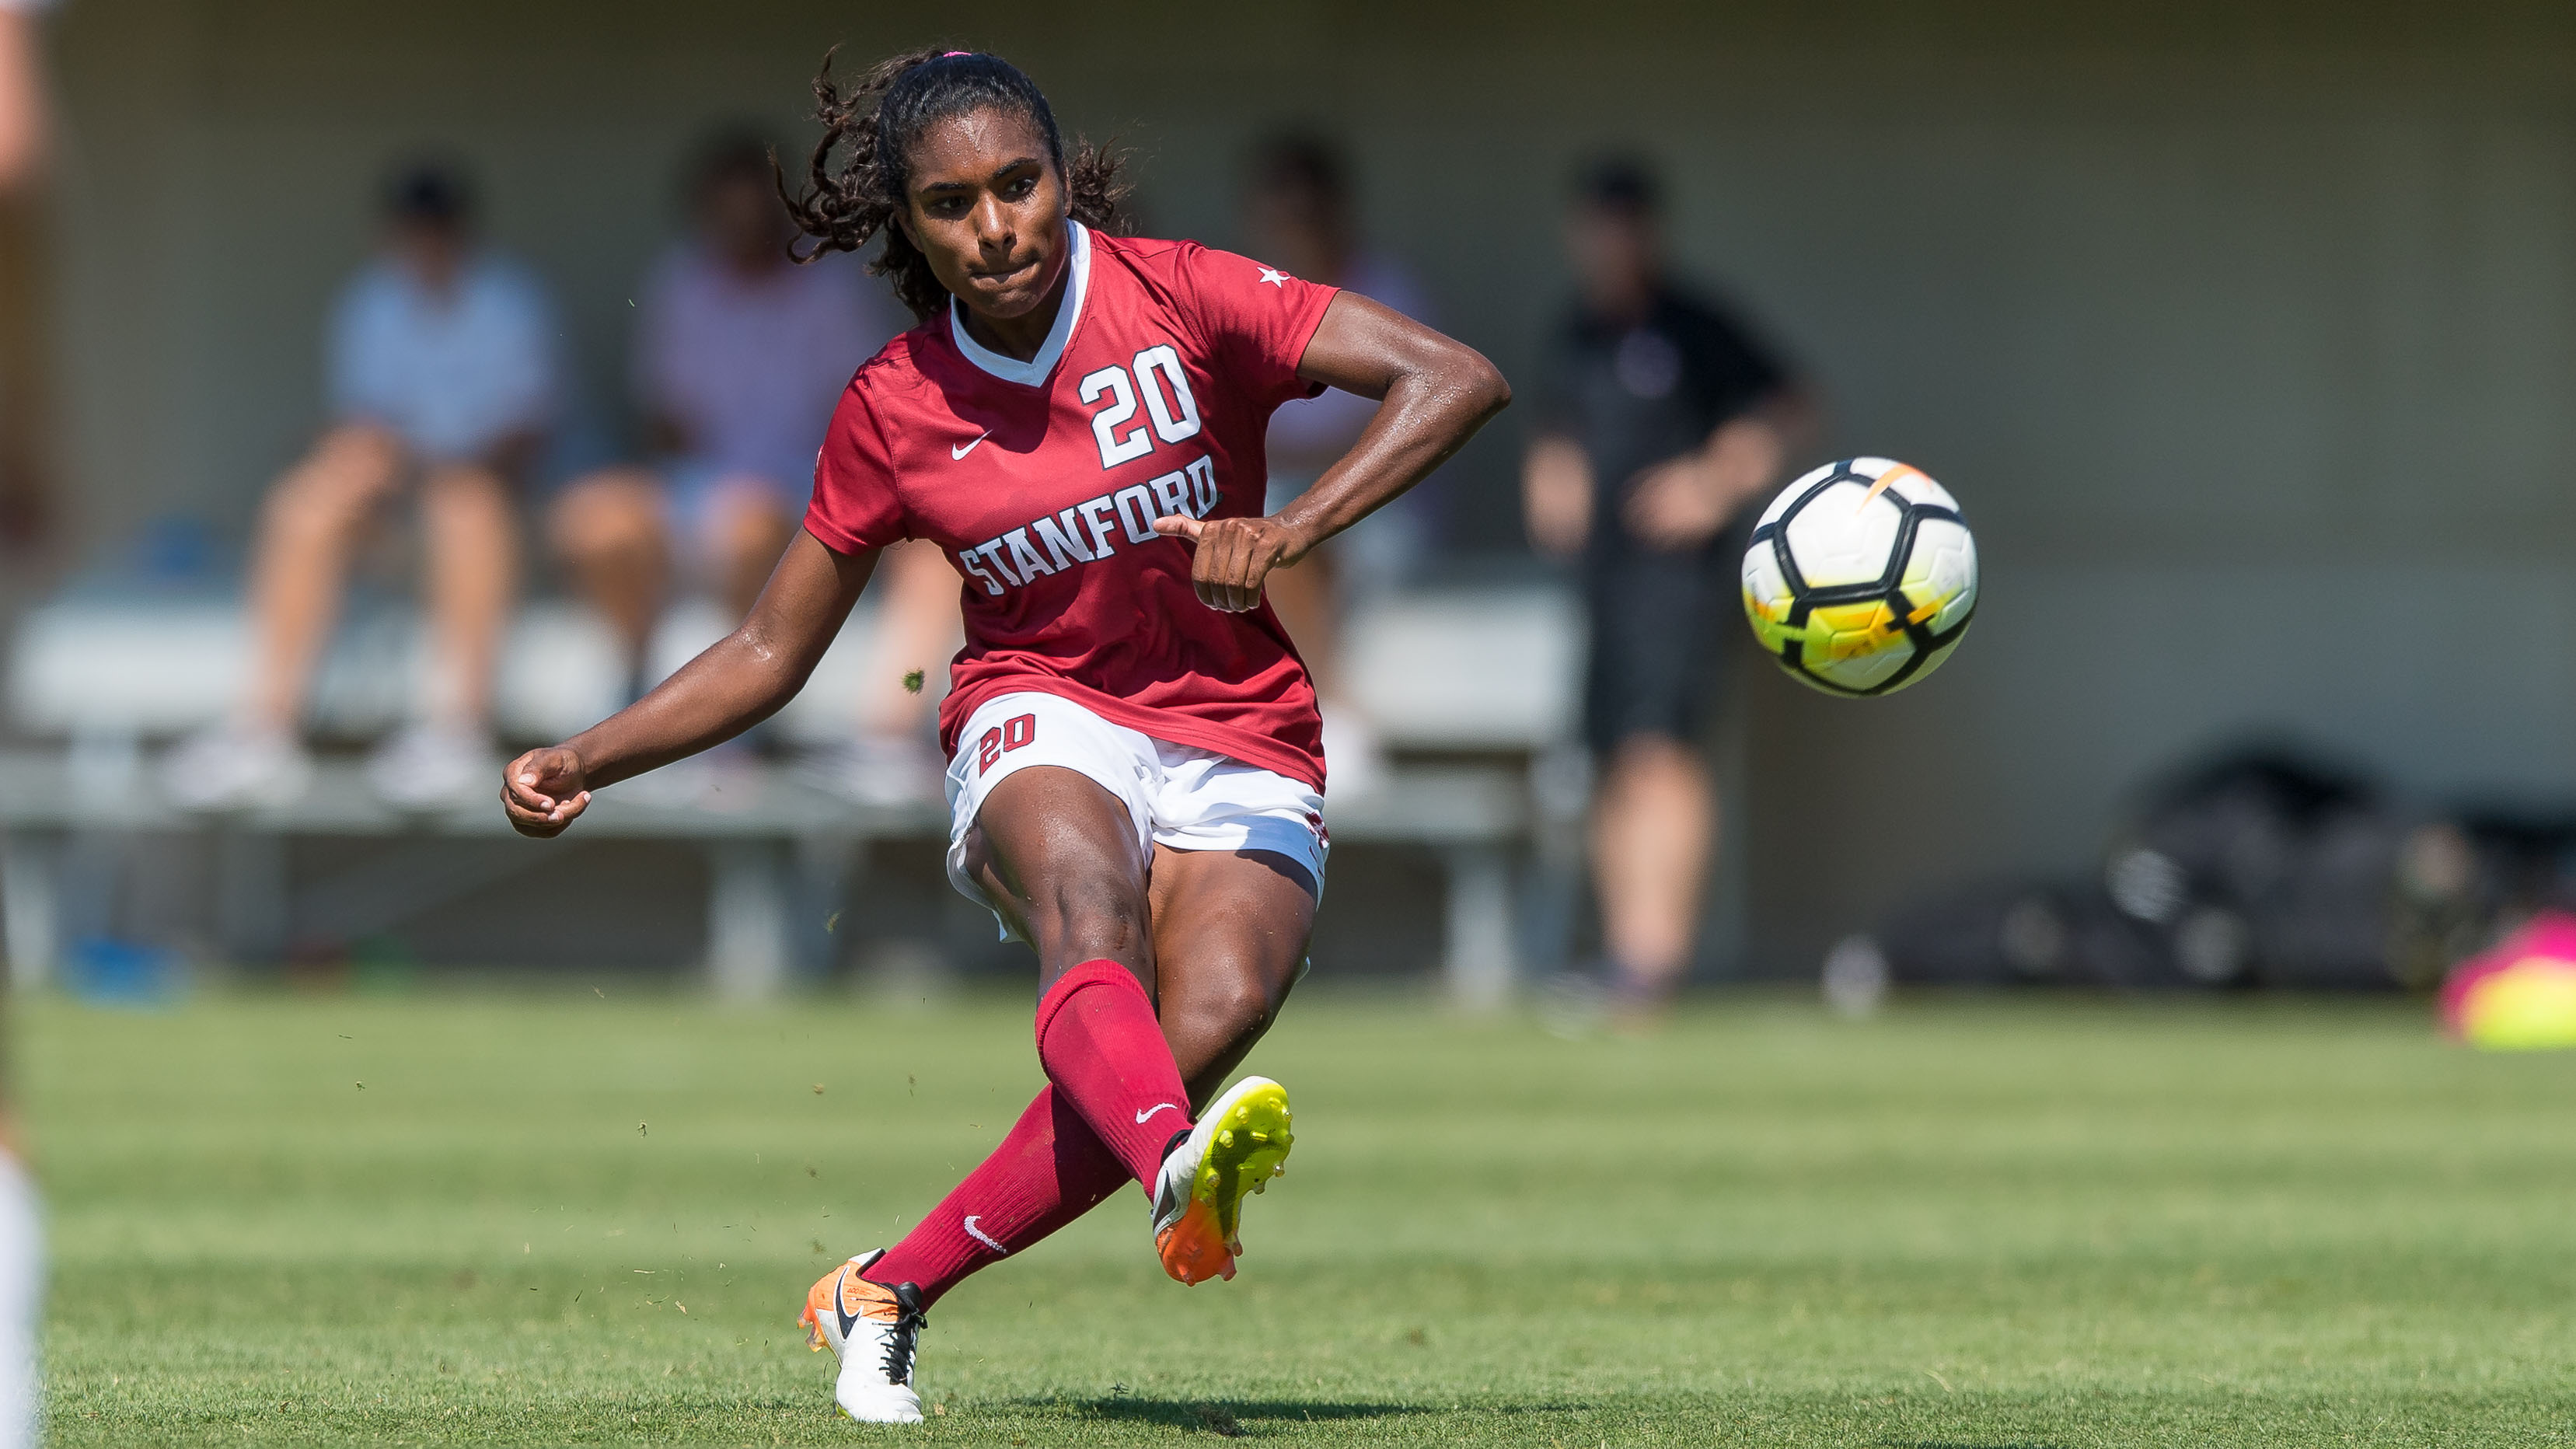 e5bf3f8608d Who are the top women s soccer players to watch this season